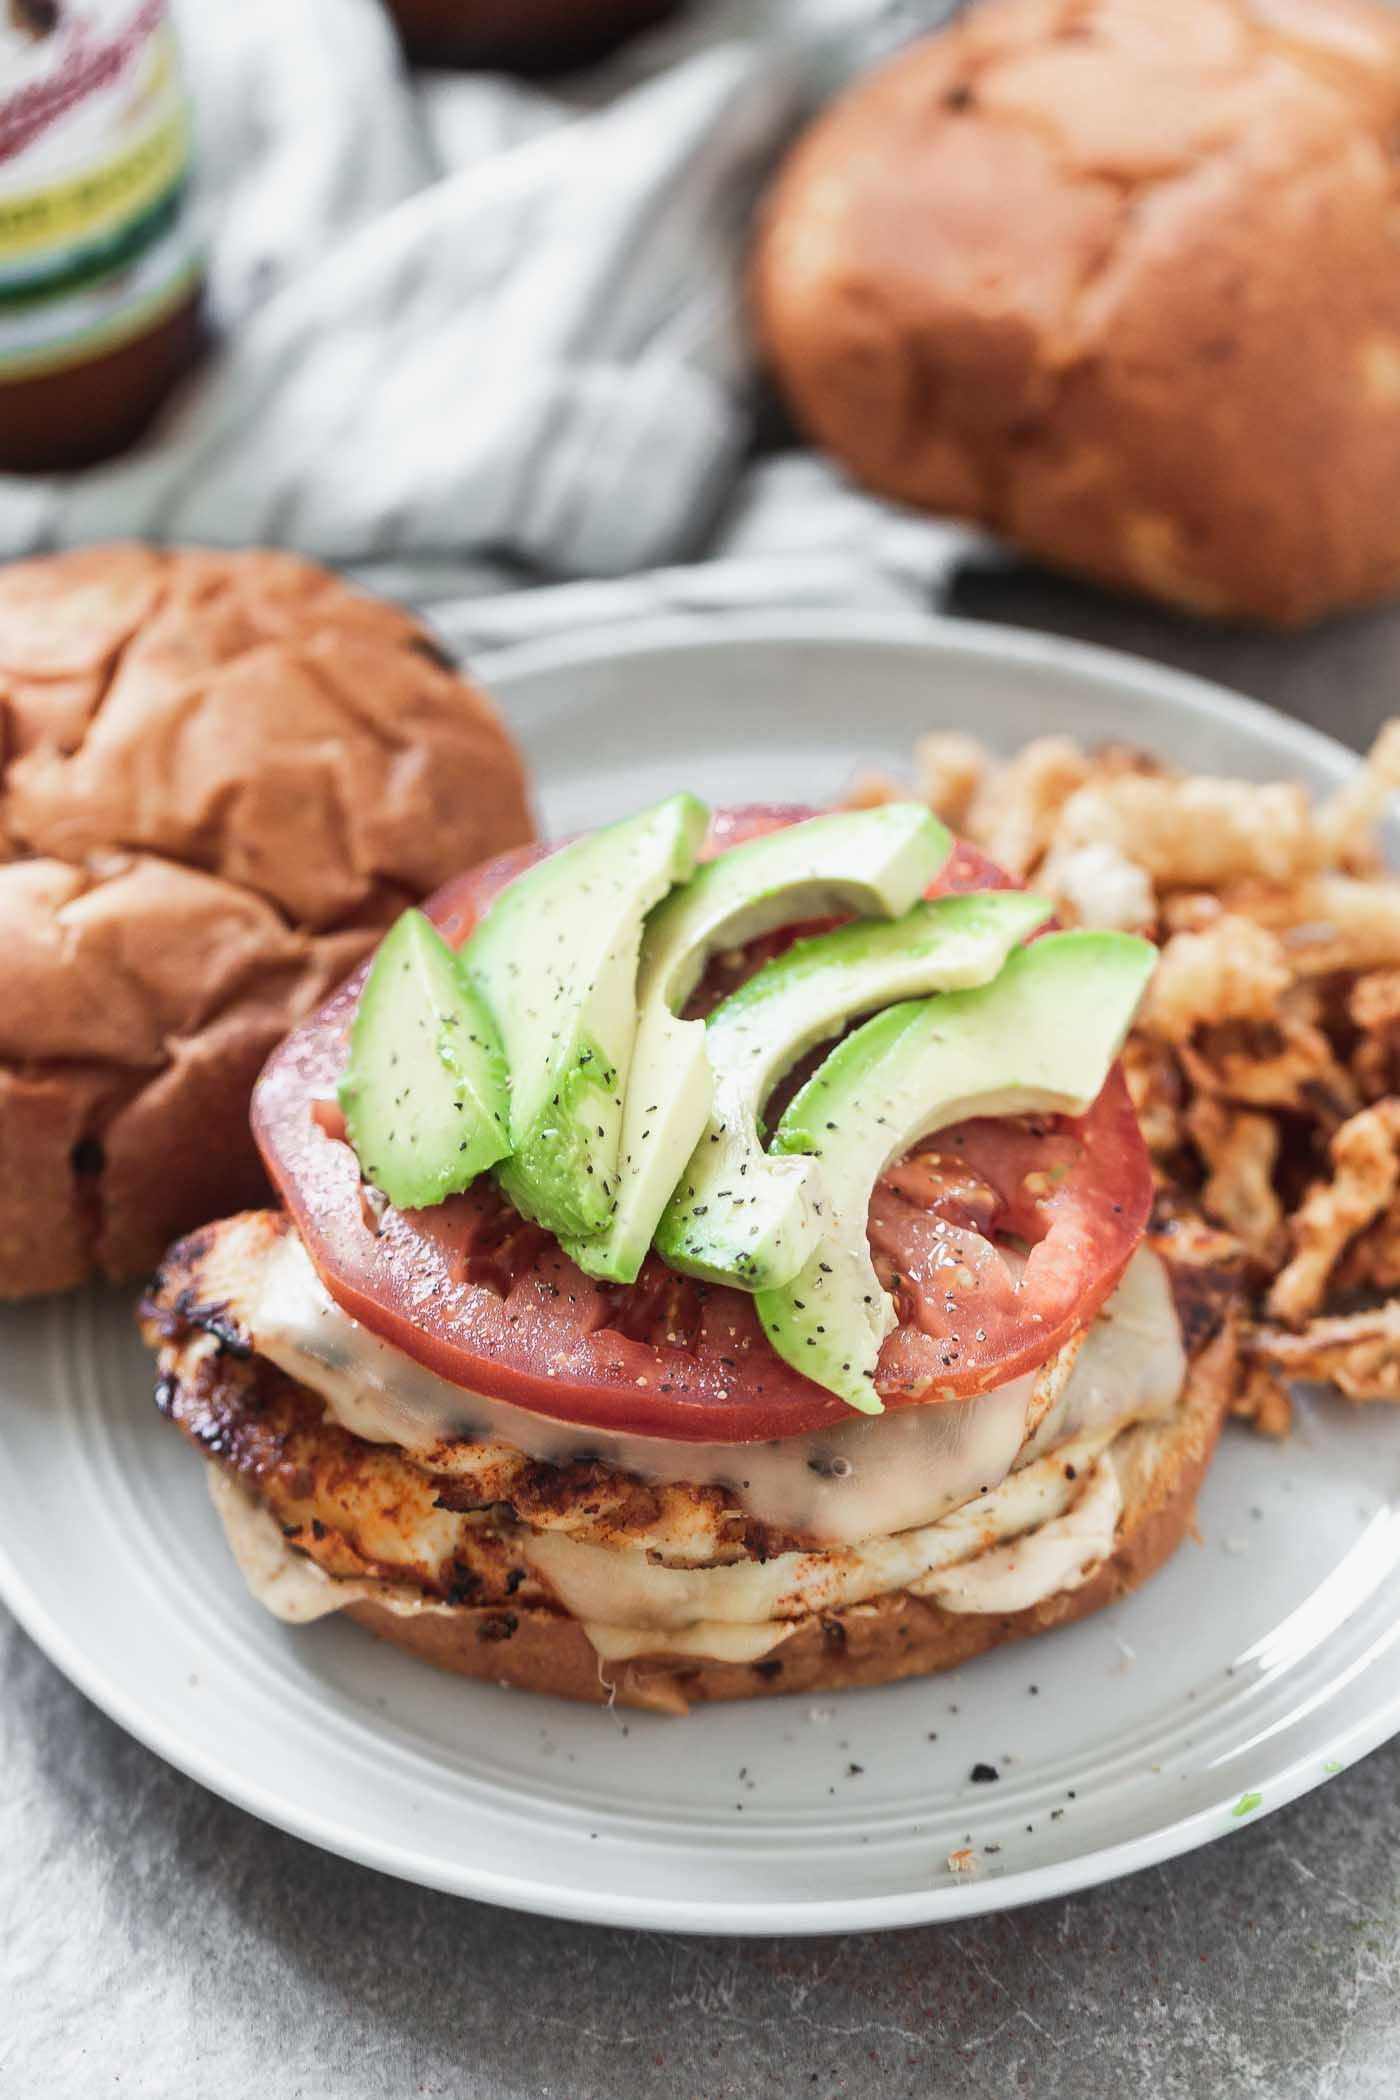 Blackened Chicken Sandwiches with Chipotle Mayo and Gouda - Cooking for Keeps